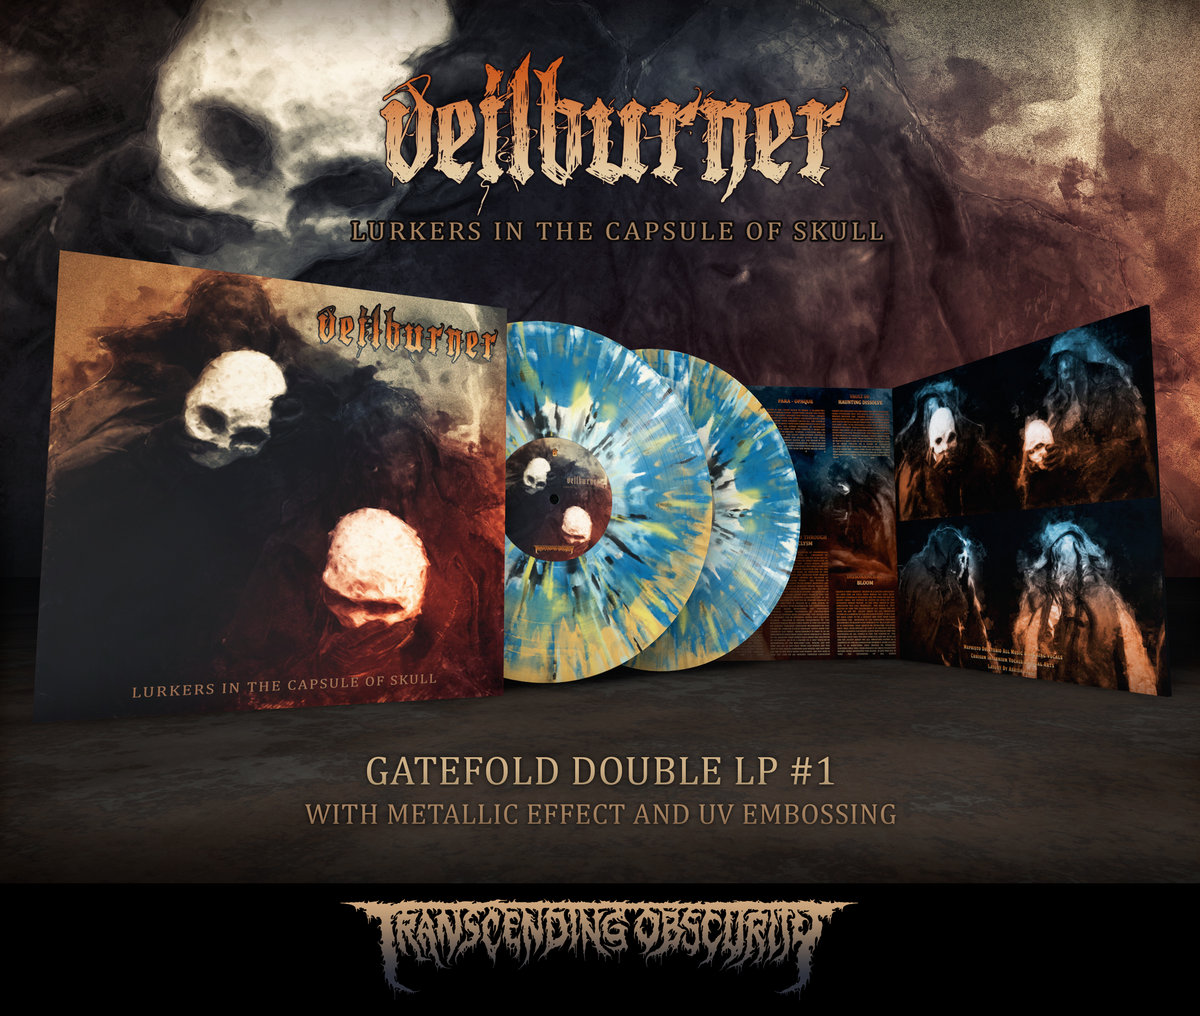 VEILBURNER - Lurkers in the Capsule of Skull Gatefold Double LP with Metallic Effect and Embossing (Limited to 100 per variant)